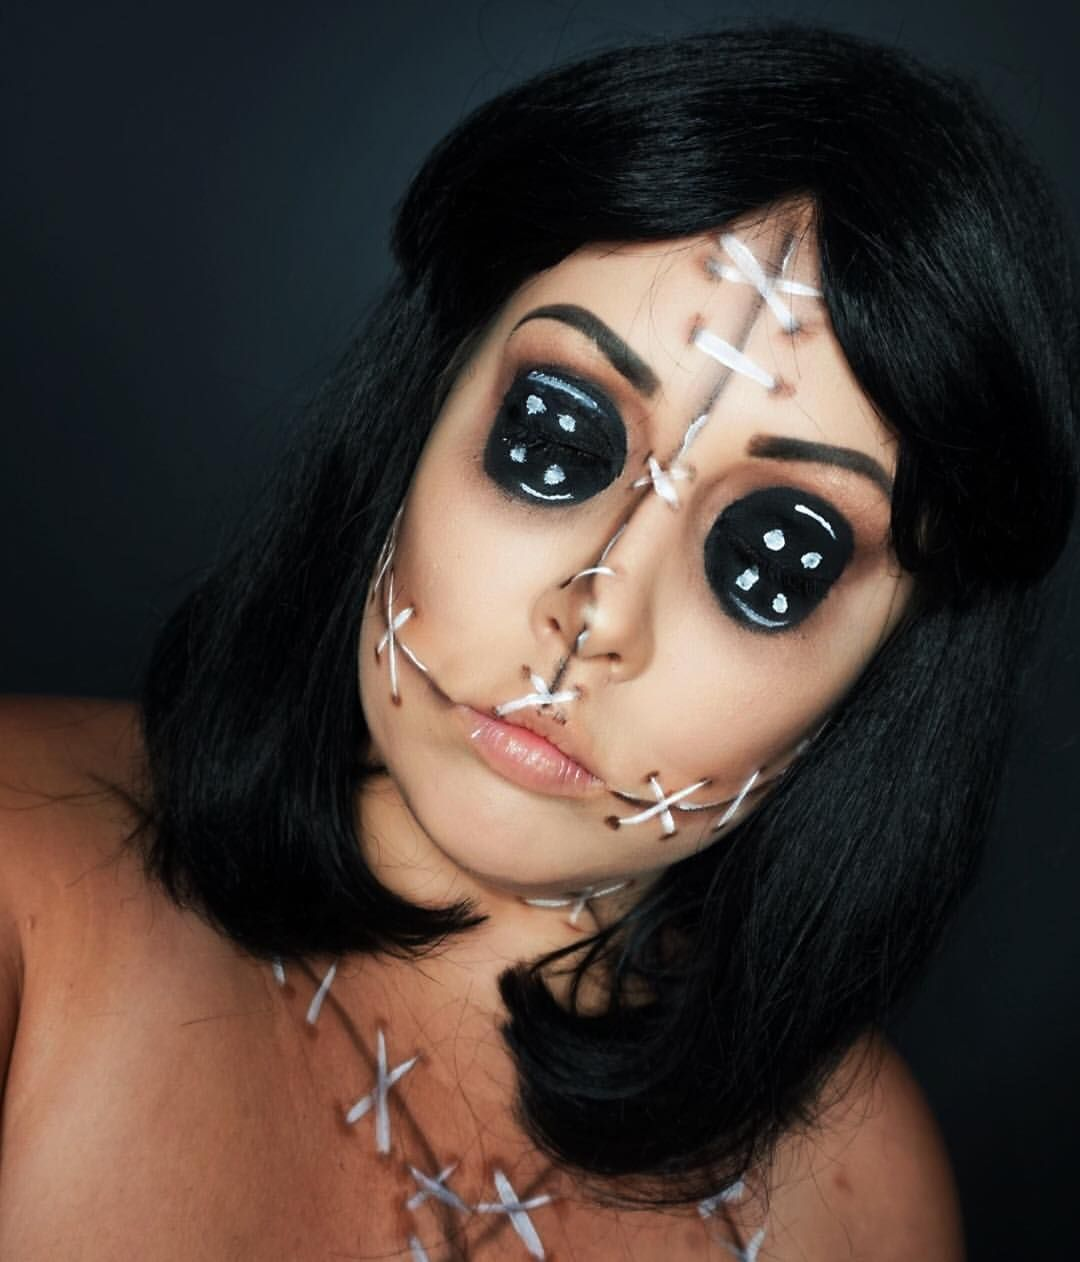 voodoo doll halloween costume voodoo doll makeup | paint yo face